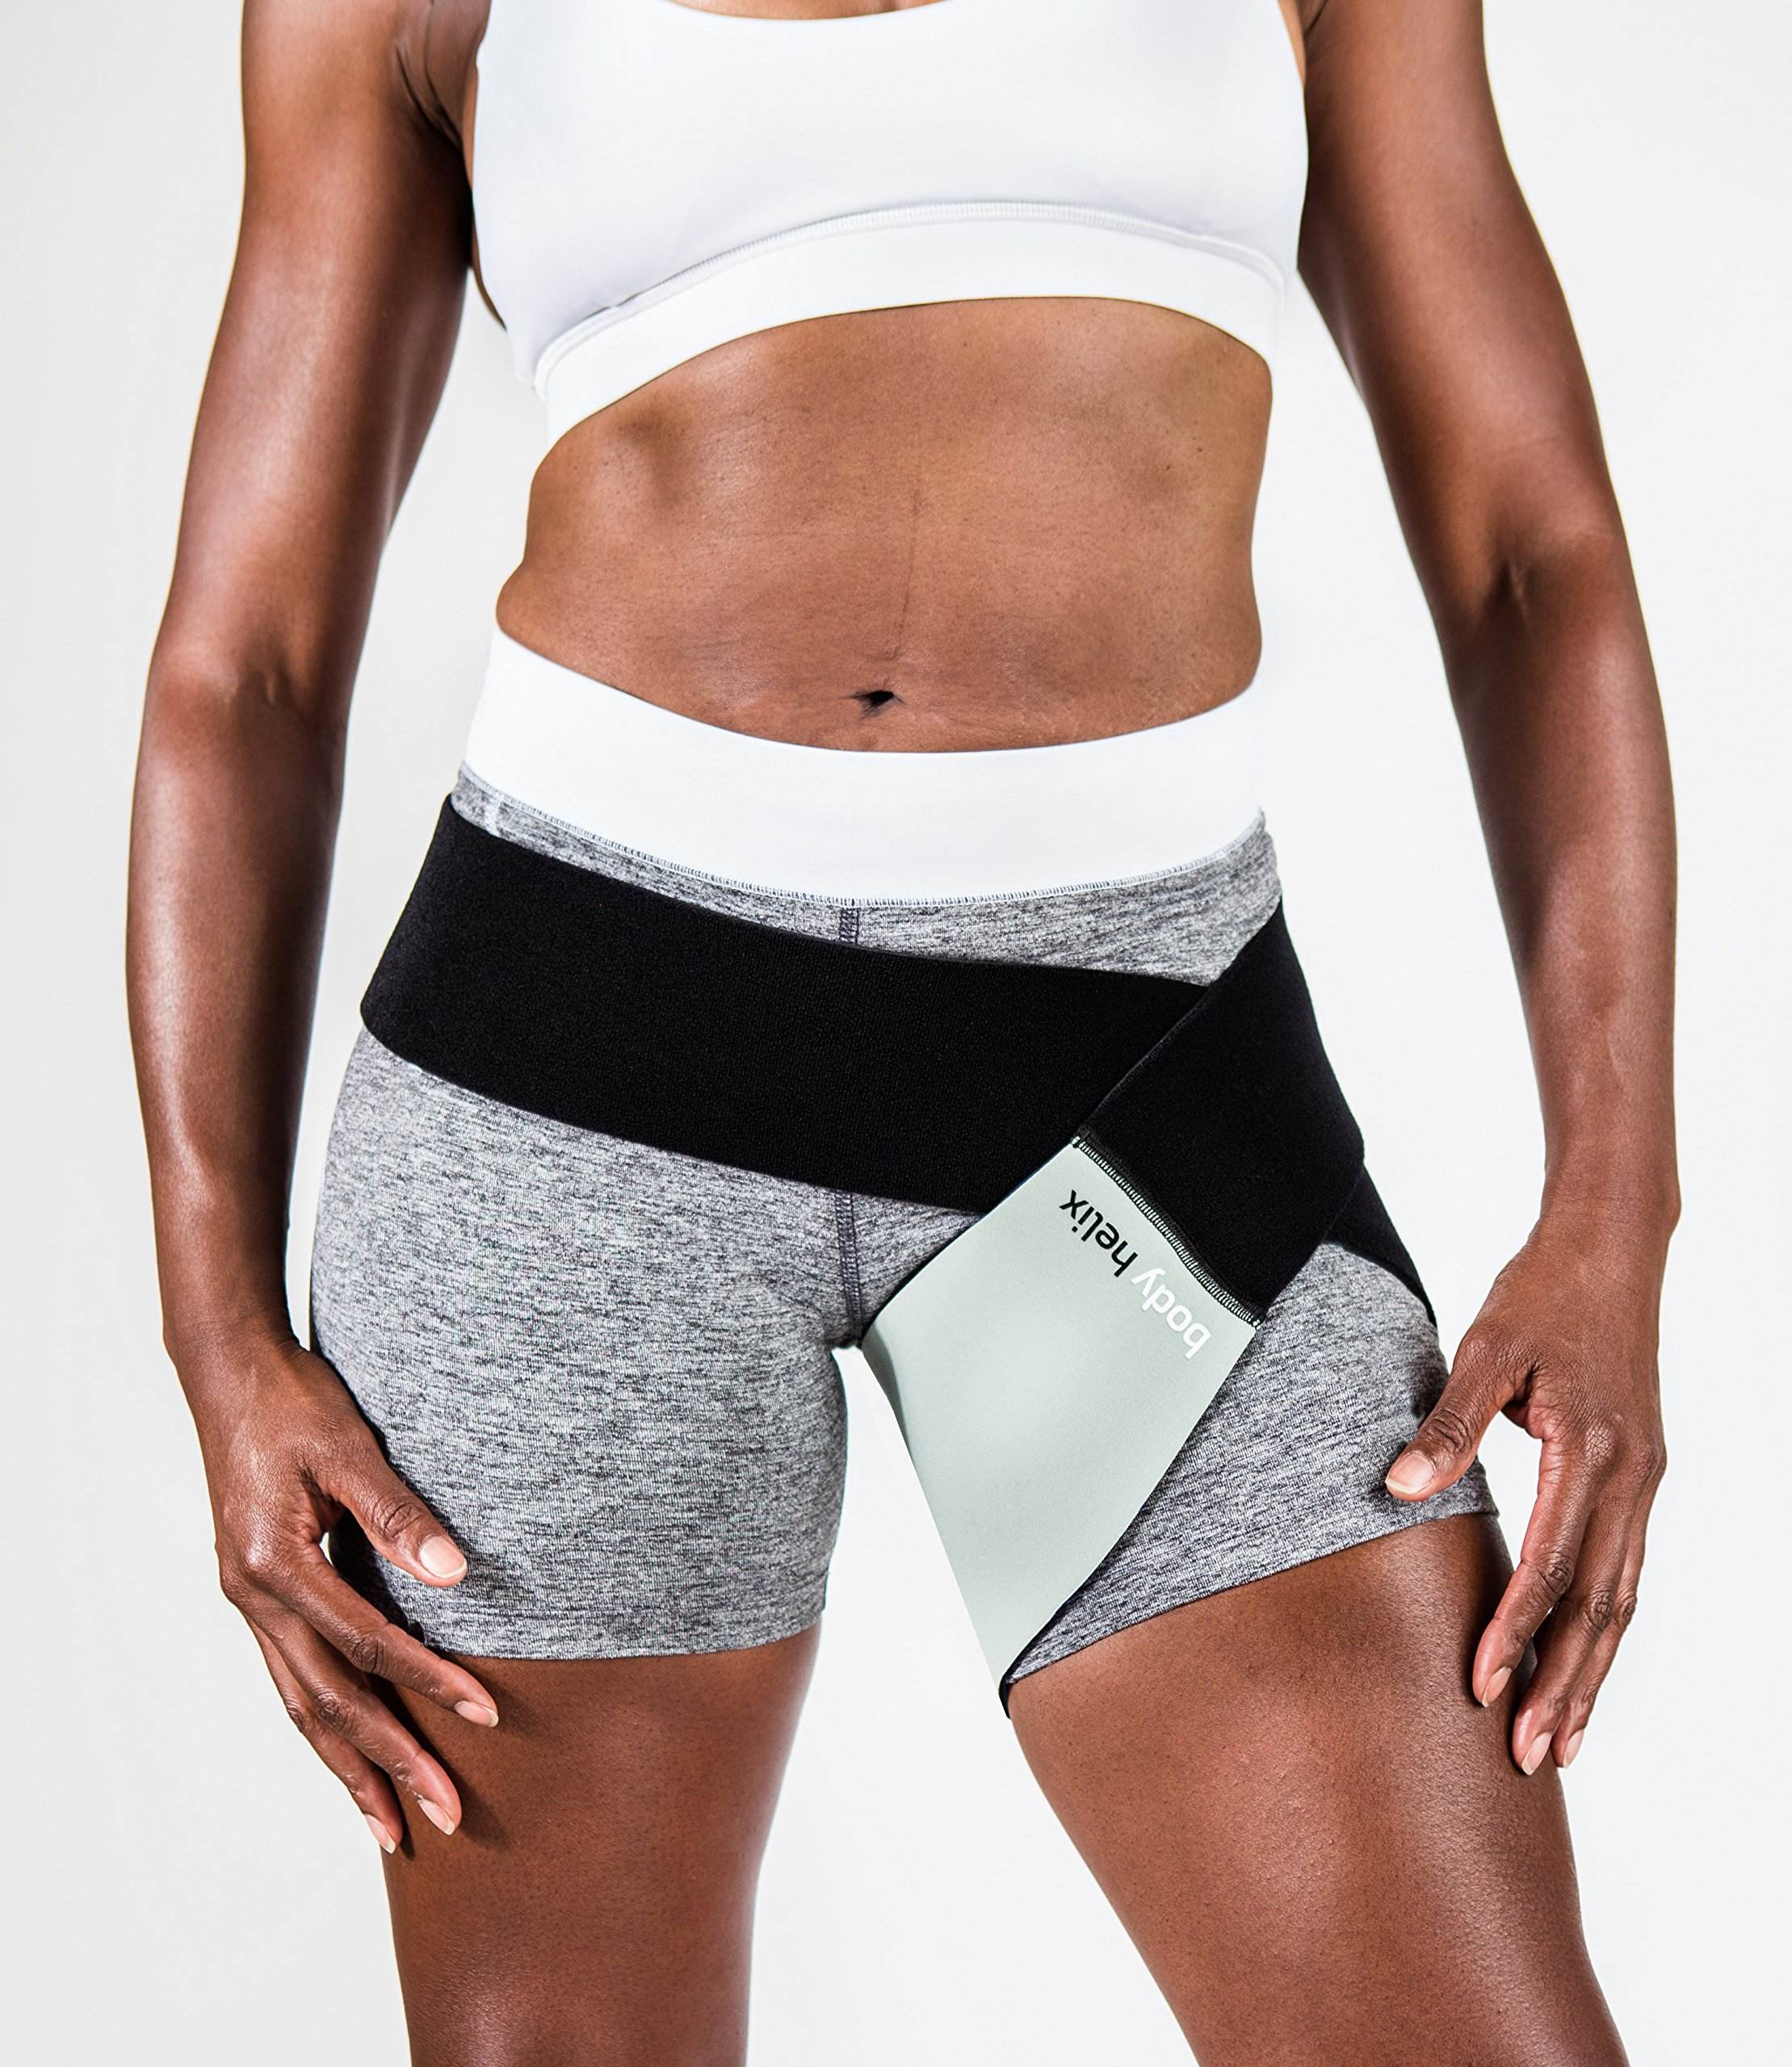 Body Helix - Adjustable Groin Helix Compression Wrap - Provides Exceptional Support to The Muscles and tendons That Become Injured with a Groin Strain or Sprain. (Silver)